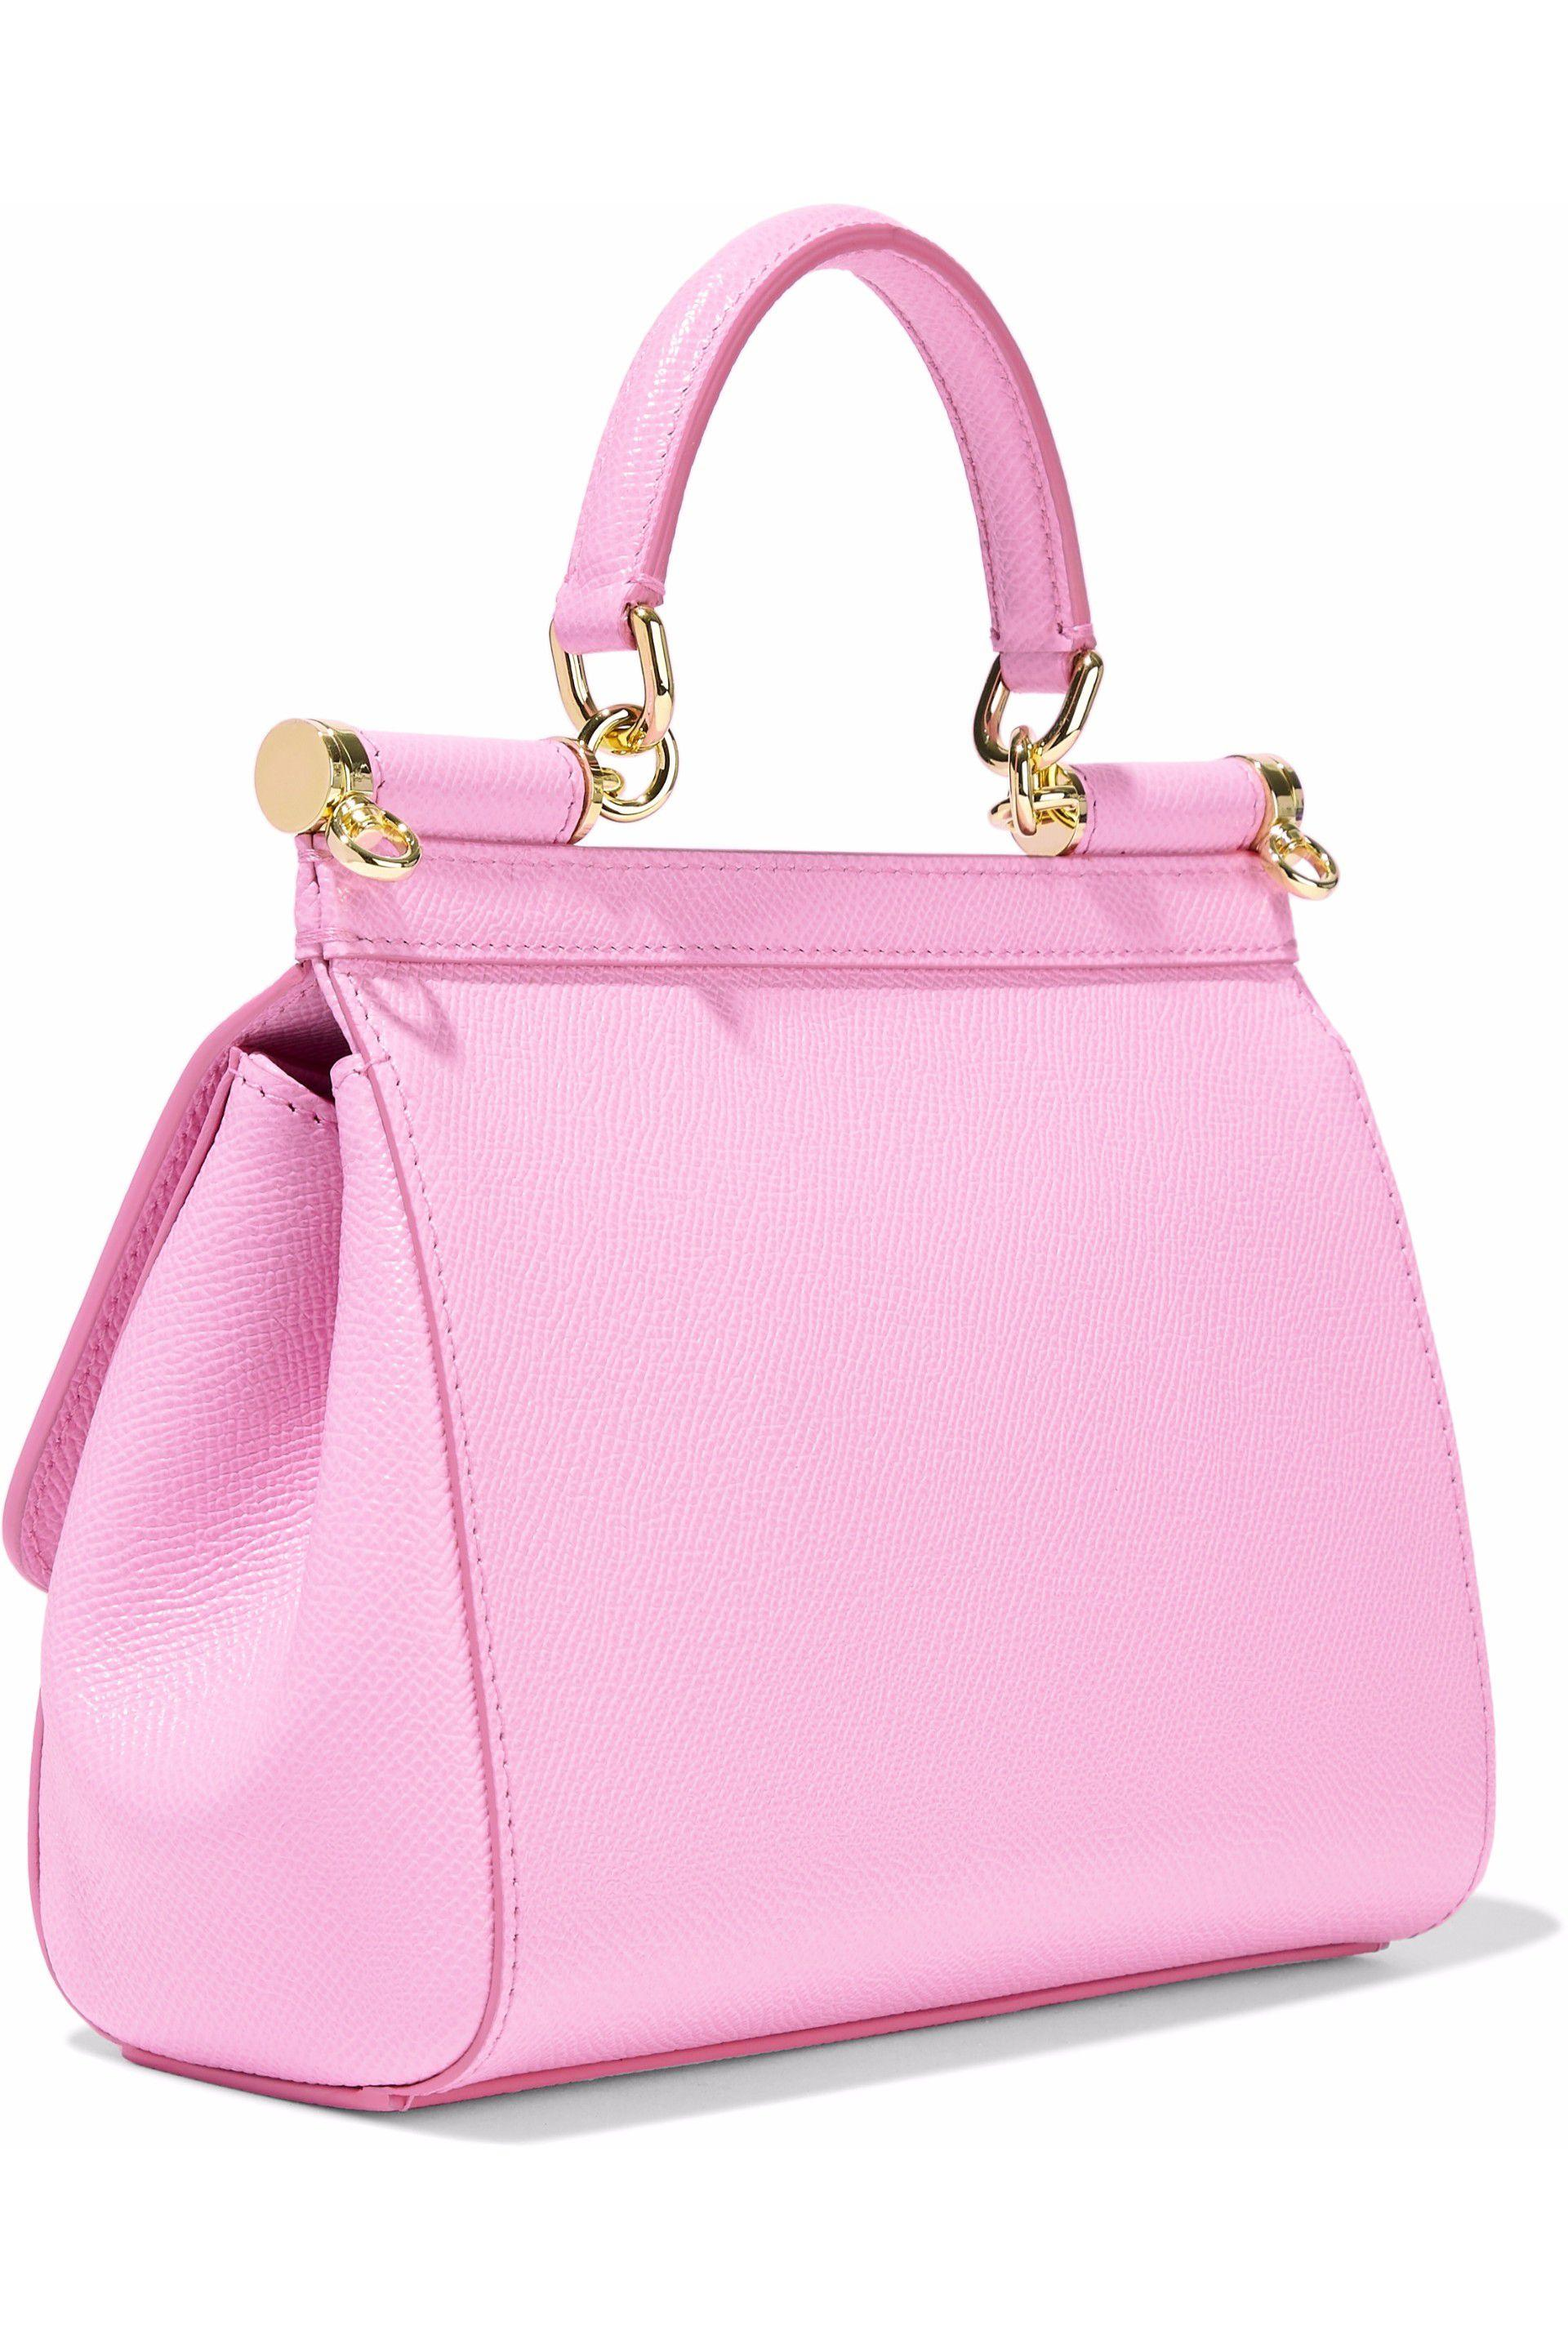 736d869902f8 Dolce   Gabbana - Woman Textured-leather Shoulder Bag Baby Pink - Lyst.  View fullscreen